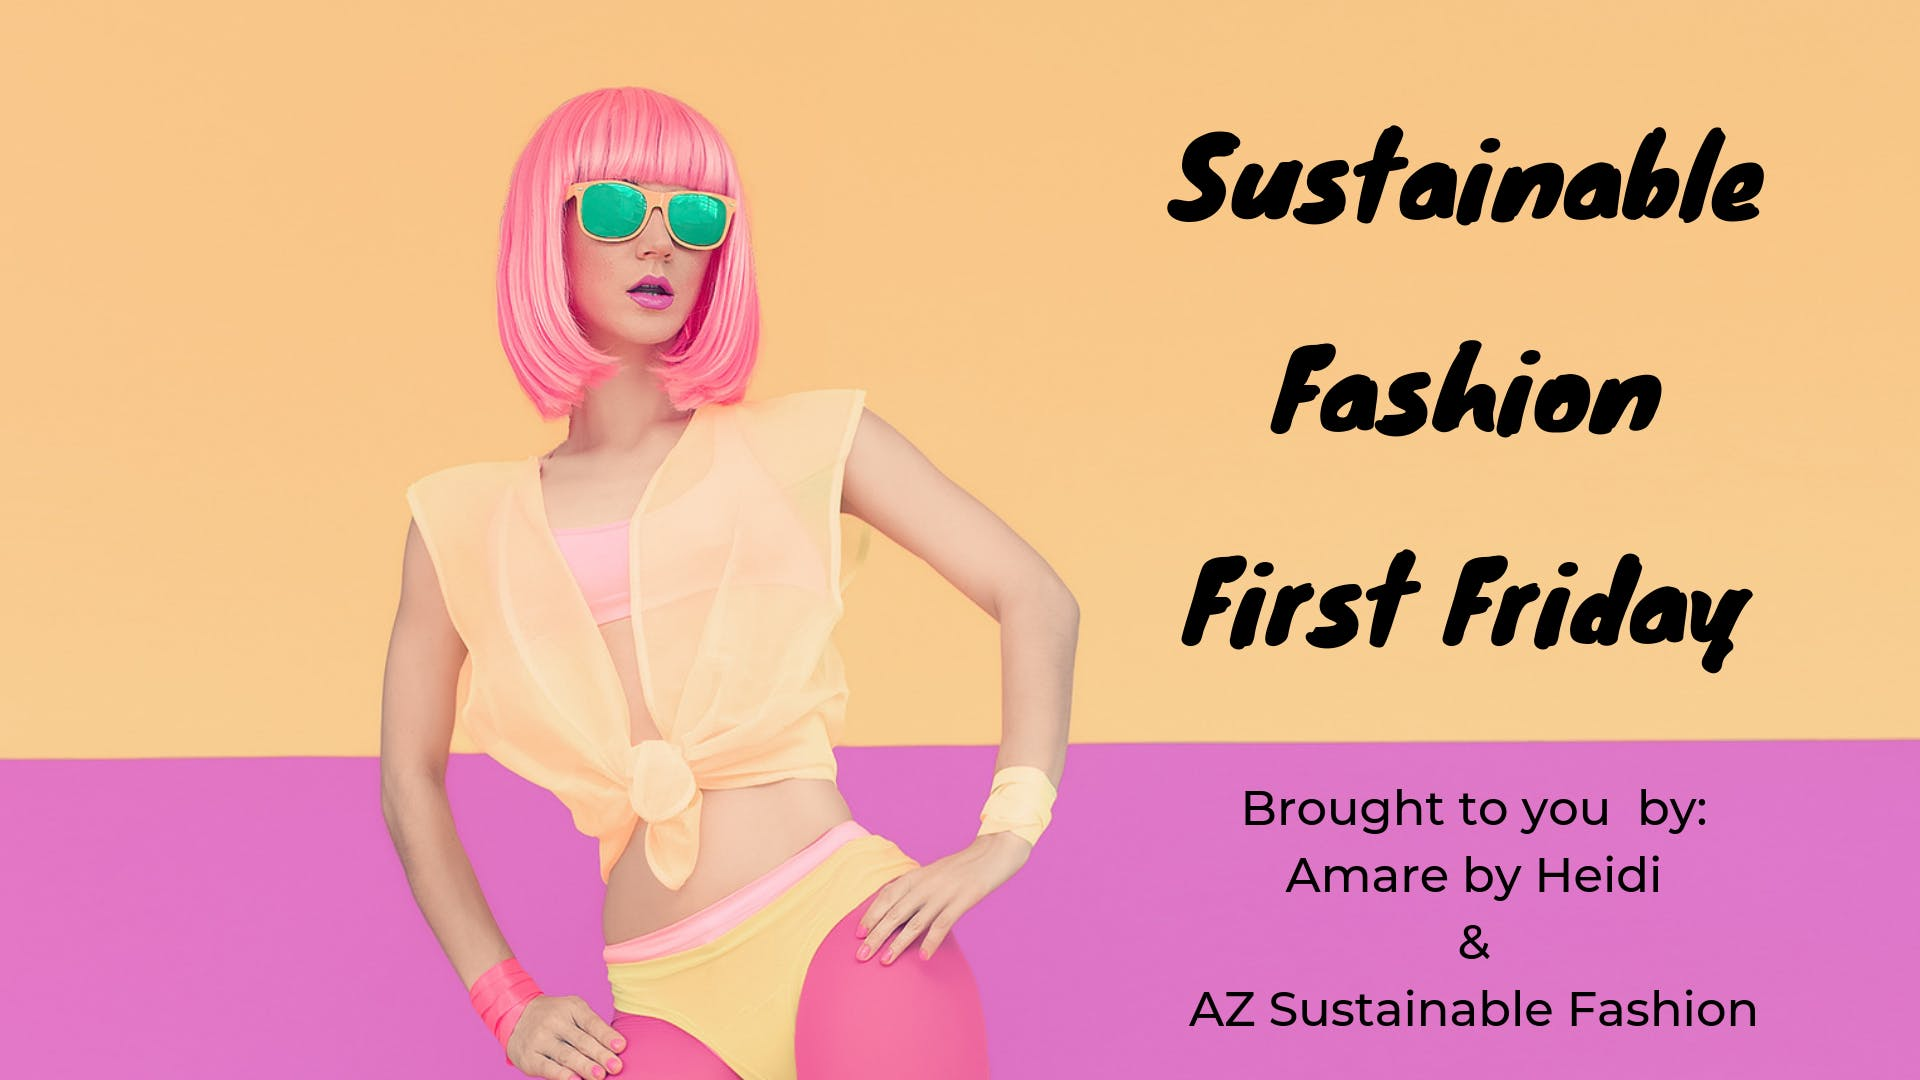 Sustainable Fashion First Friday